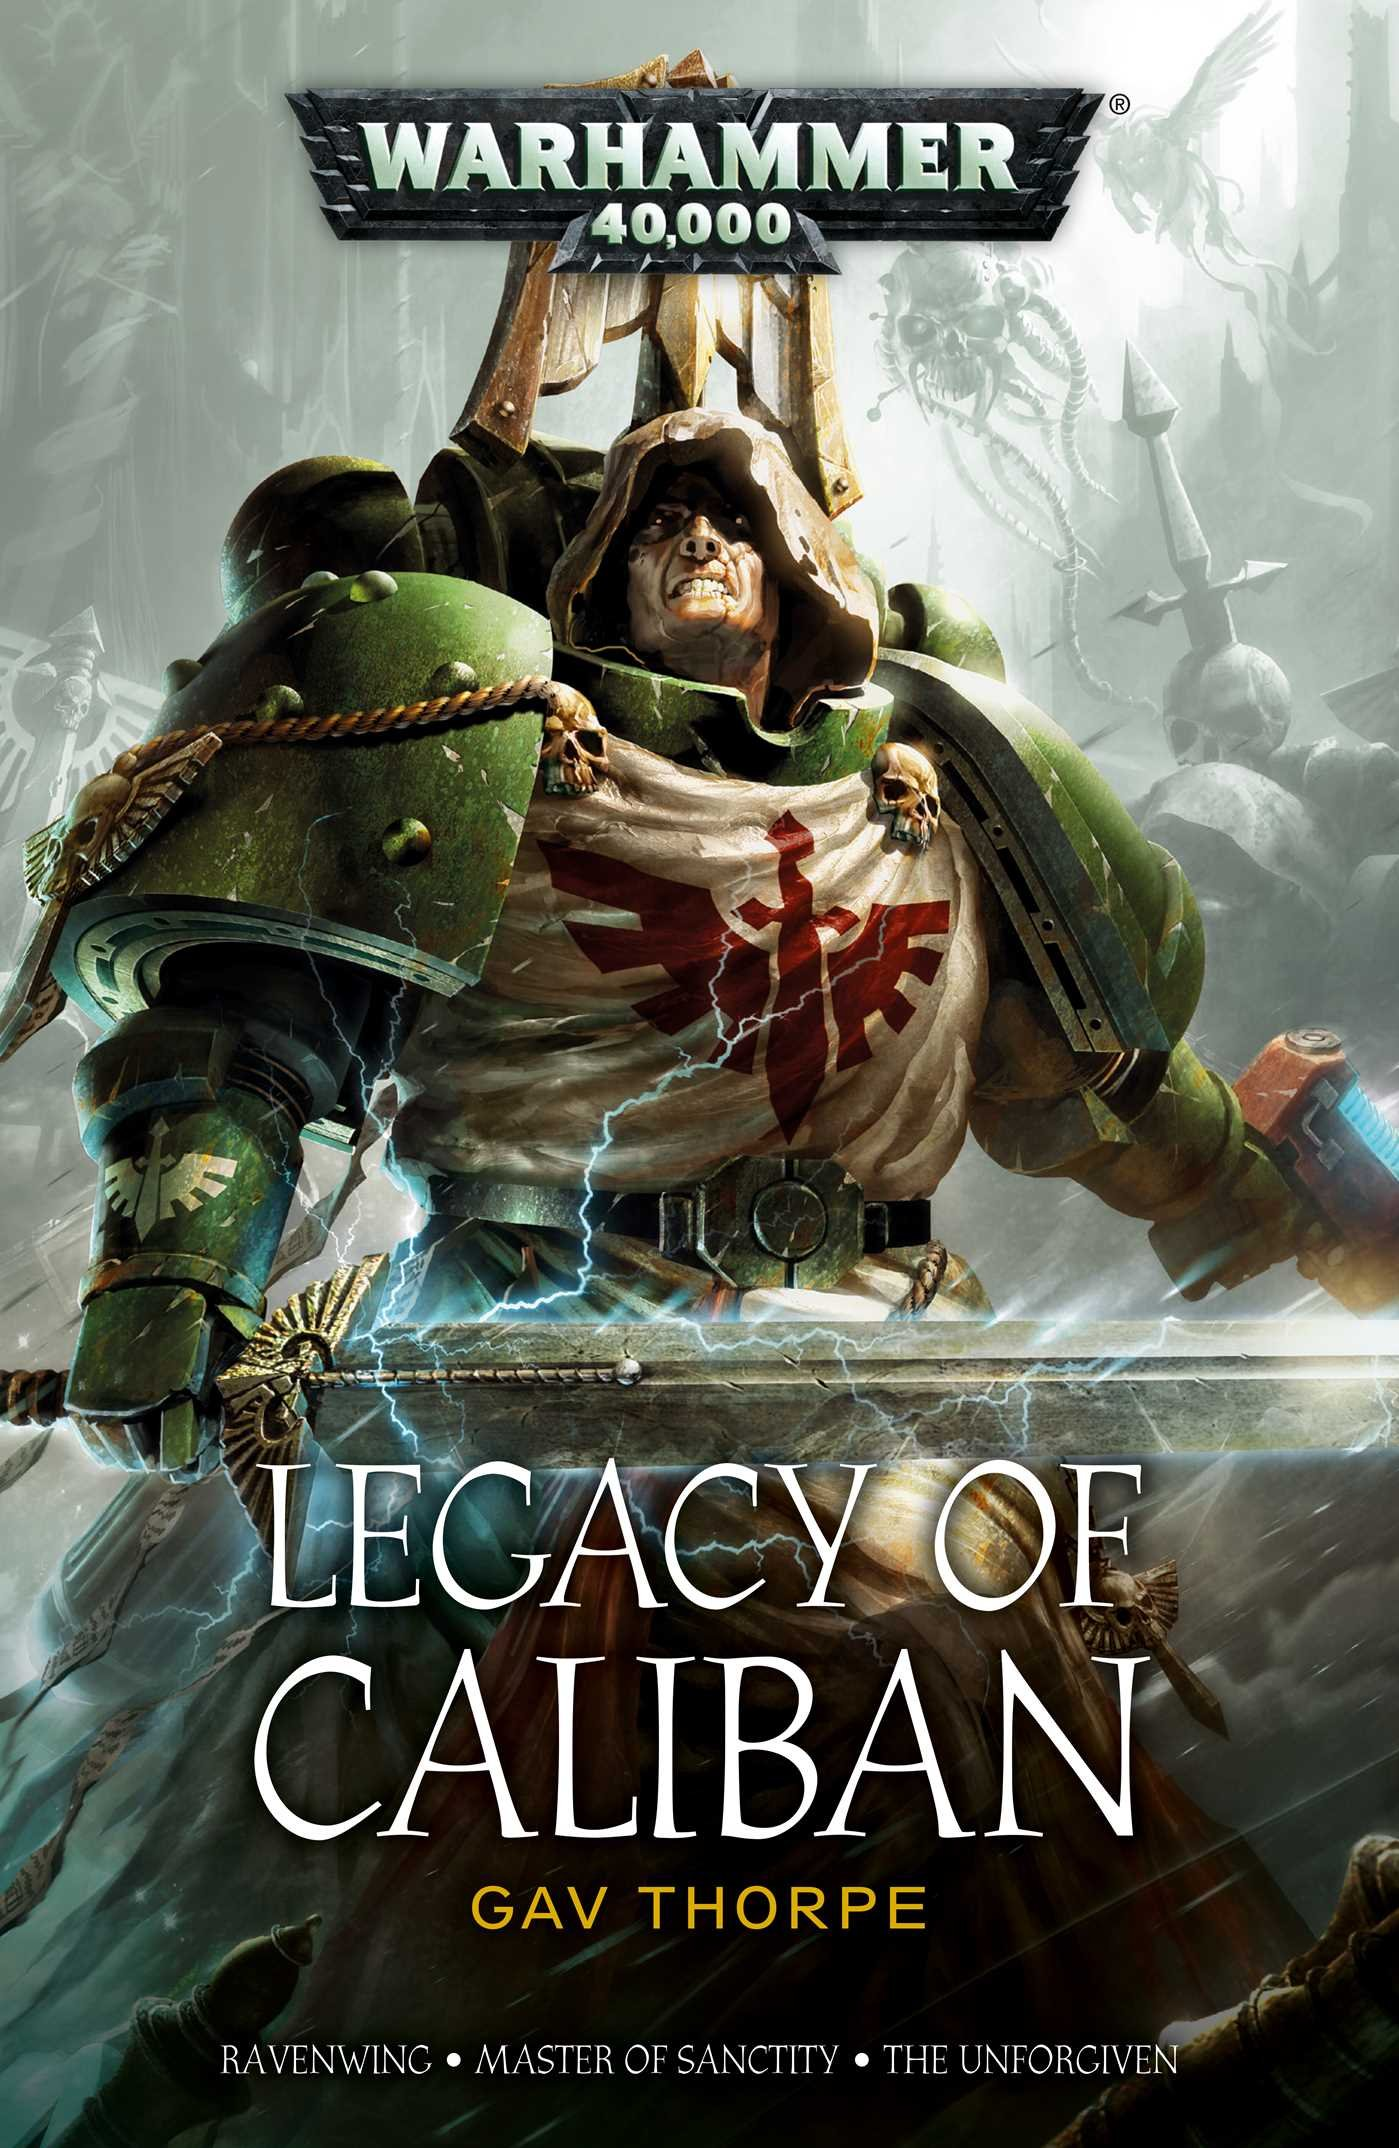 Legacy of caliban the omnibus warhammer novels paperback legacy of caliban the omnibus warhammer novels paperback amazon mr gav thorpe 9781784964566 books fandeluxe Choice Image